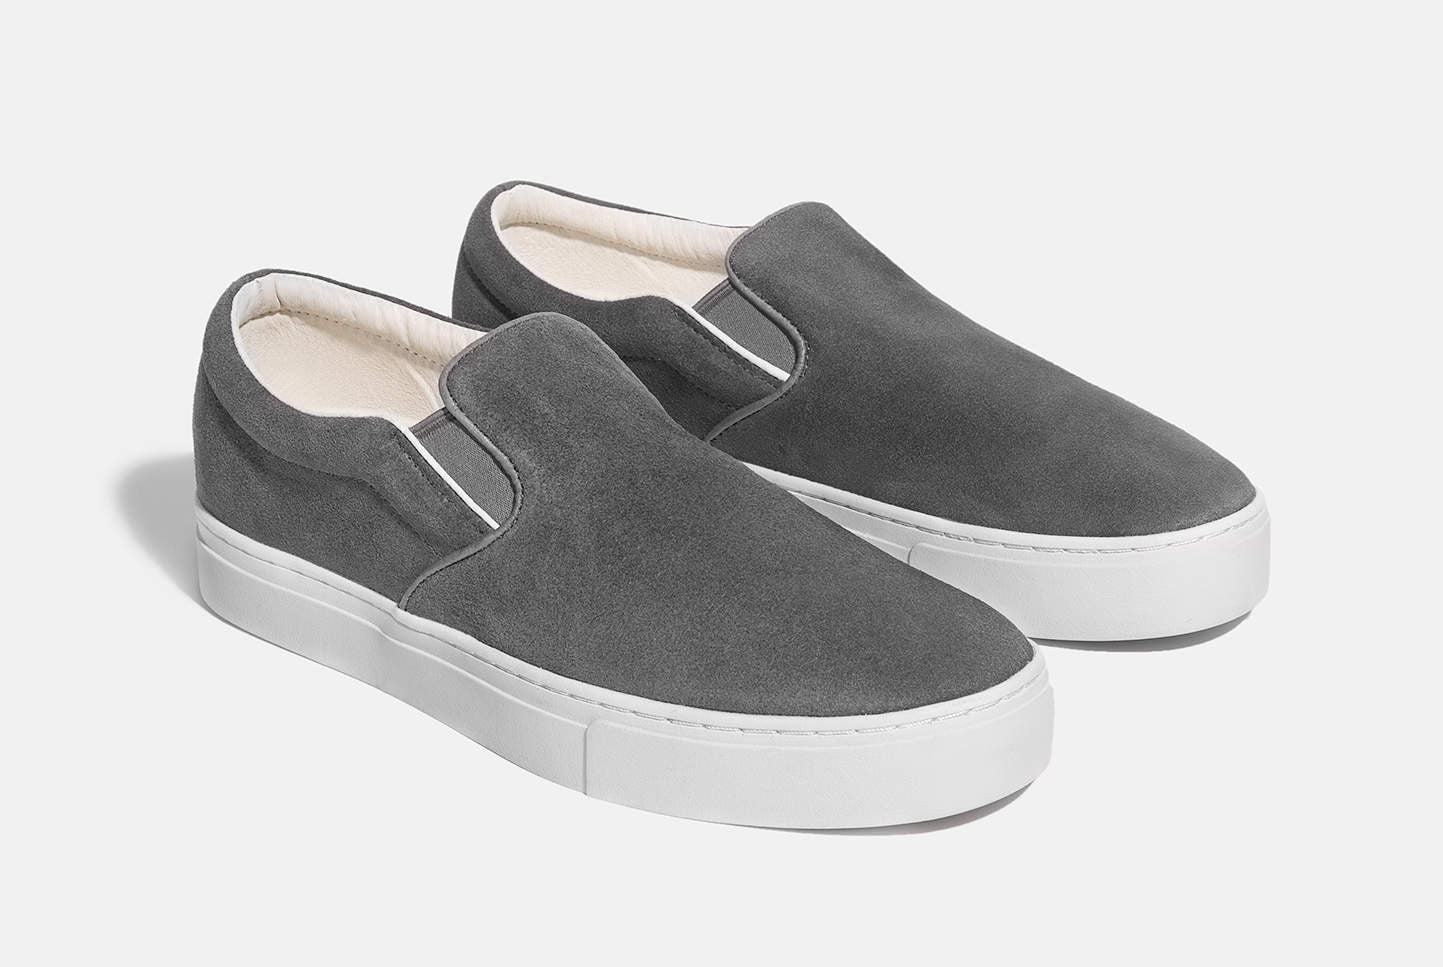 Saturdays NYC Vass Suede Slip-On Shoes